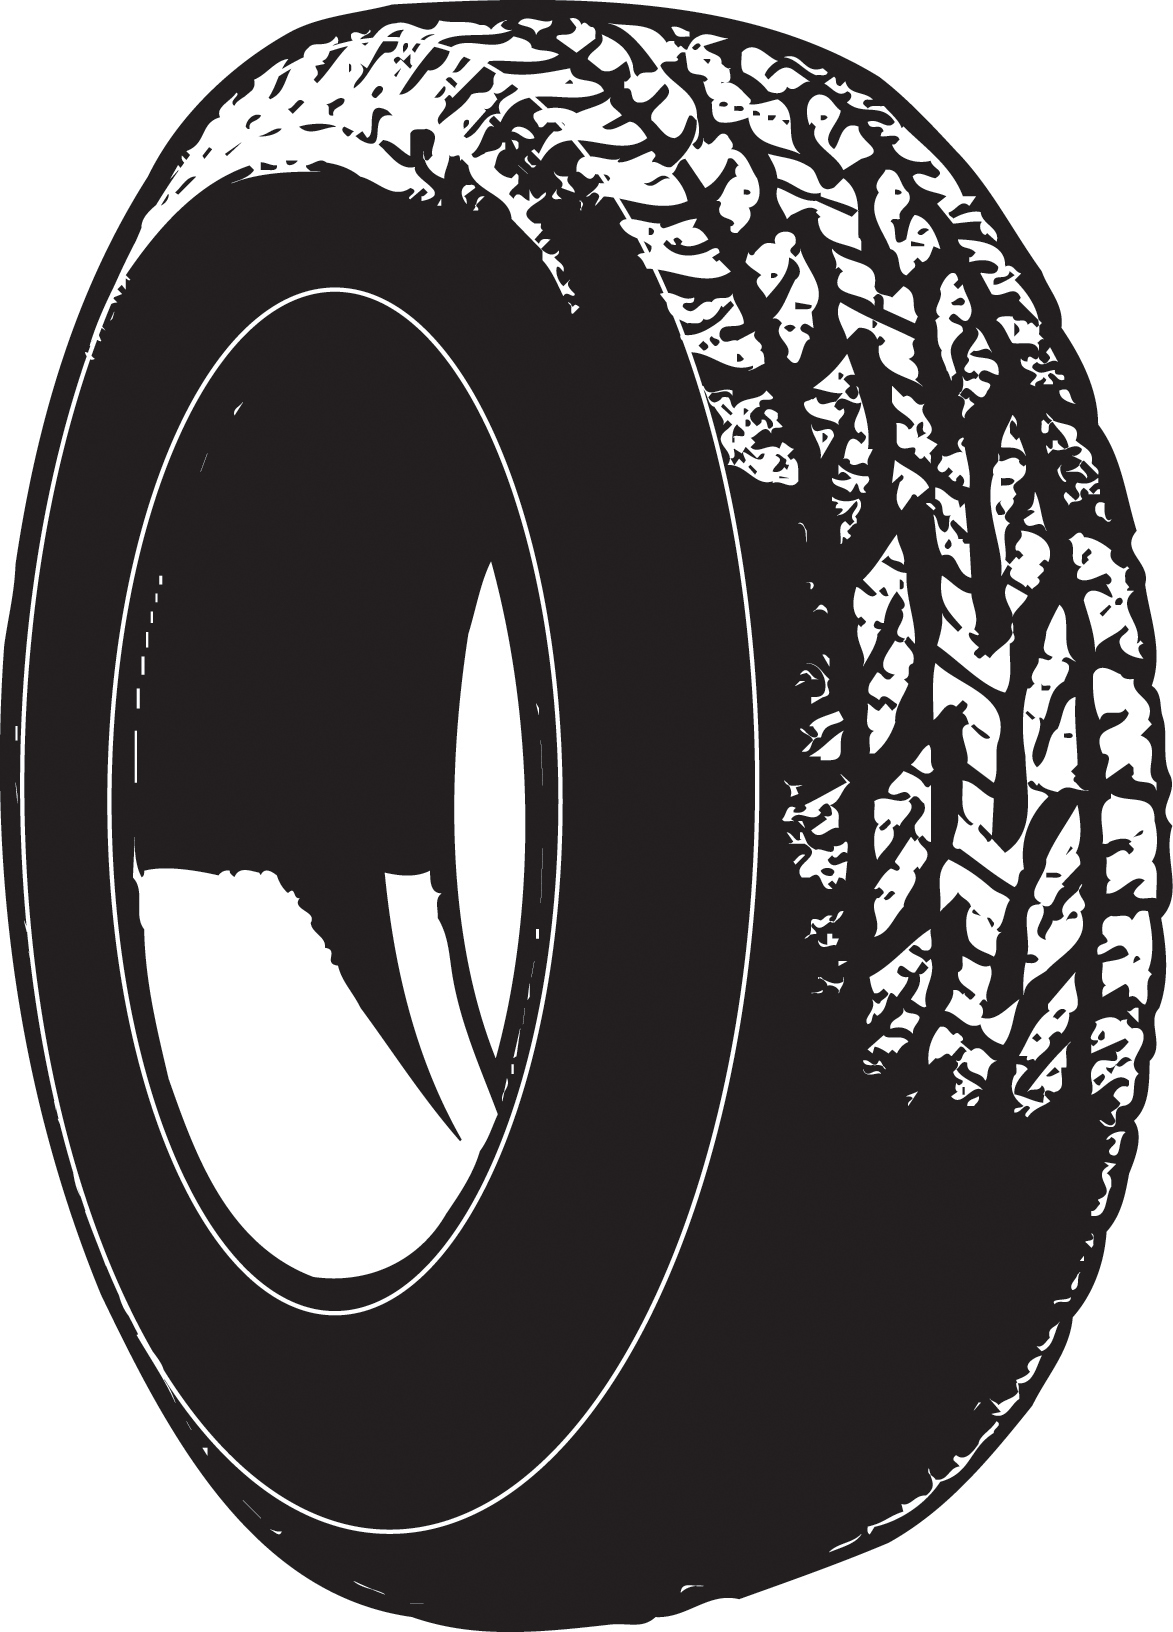 Tire clipart black and white. Best tires cute